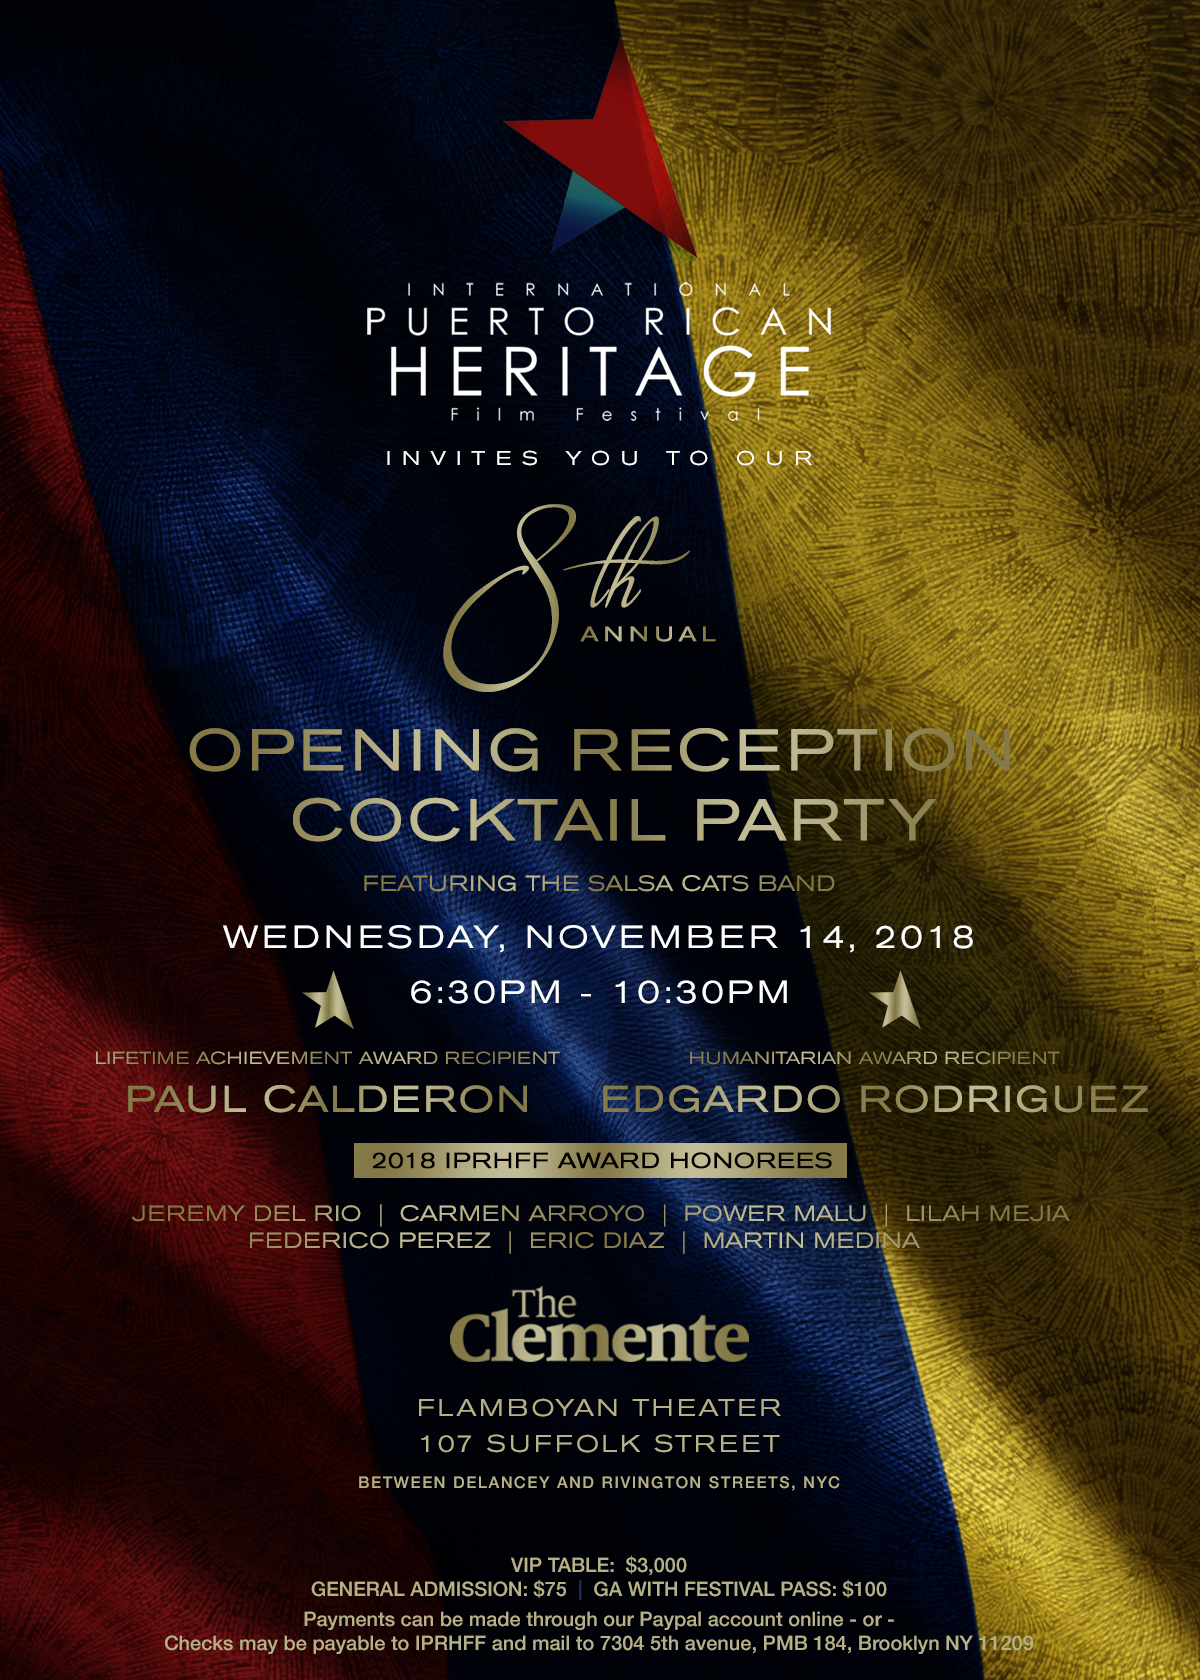 8th International Puerto Rican Heritage Film Festival Opening Reception